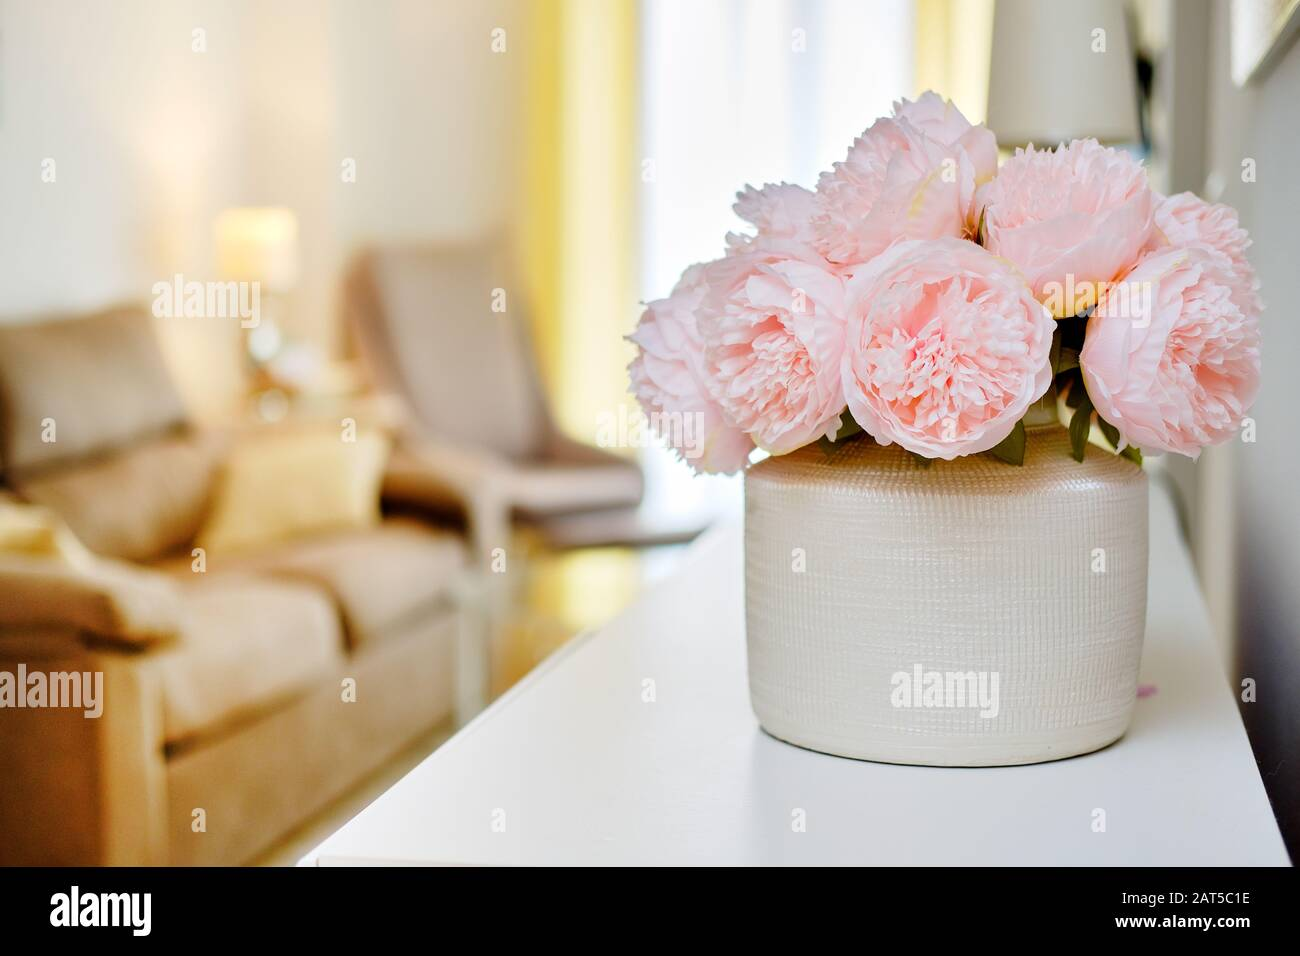 Pretty pink colour peonies flowers in white vase inside of light warm living room, selective close up focus on bouquet, no people Stock Photo